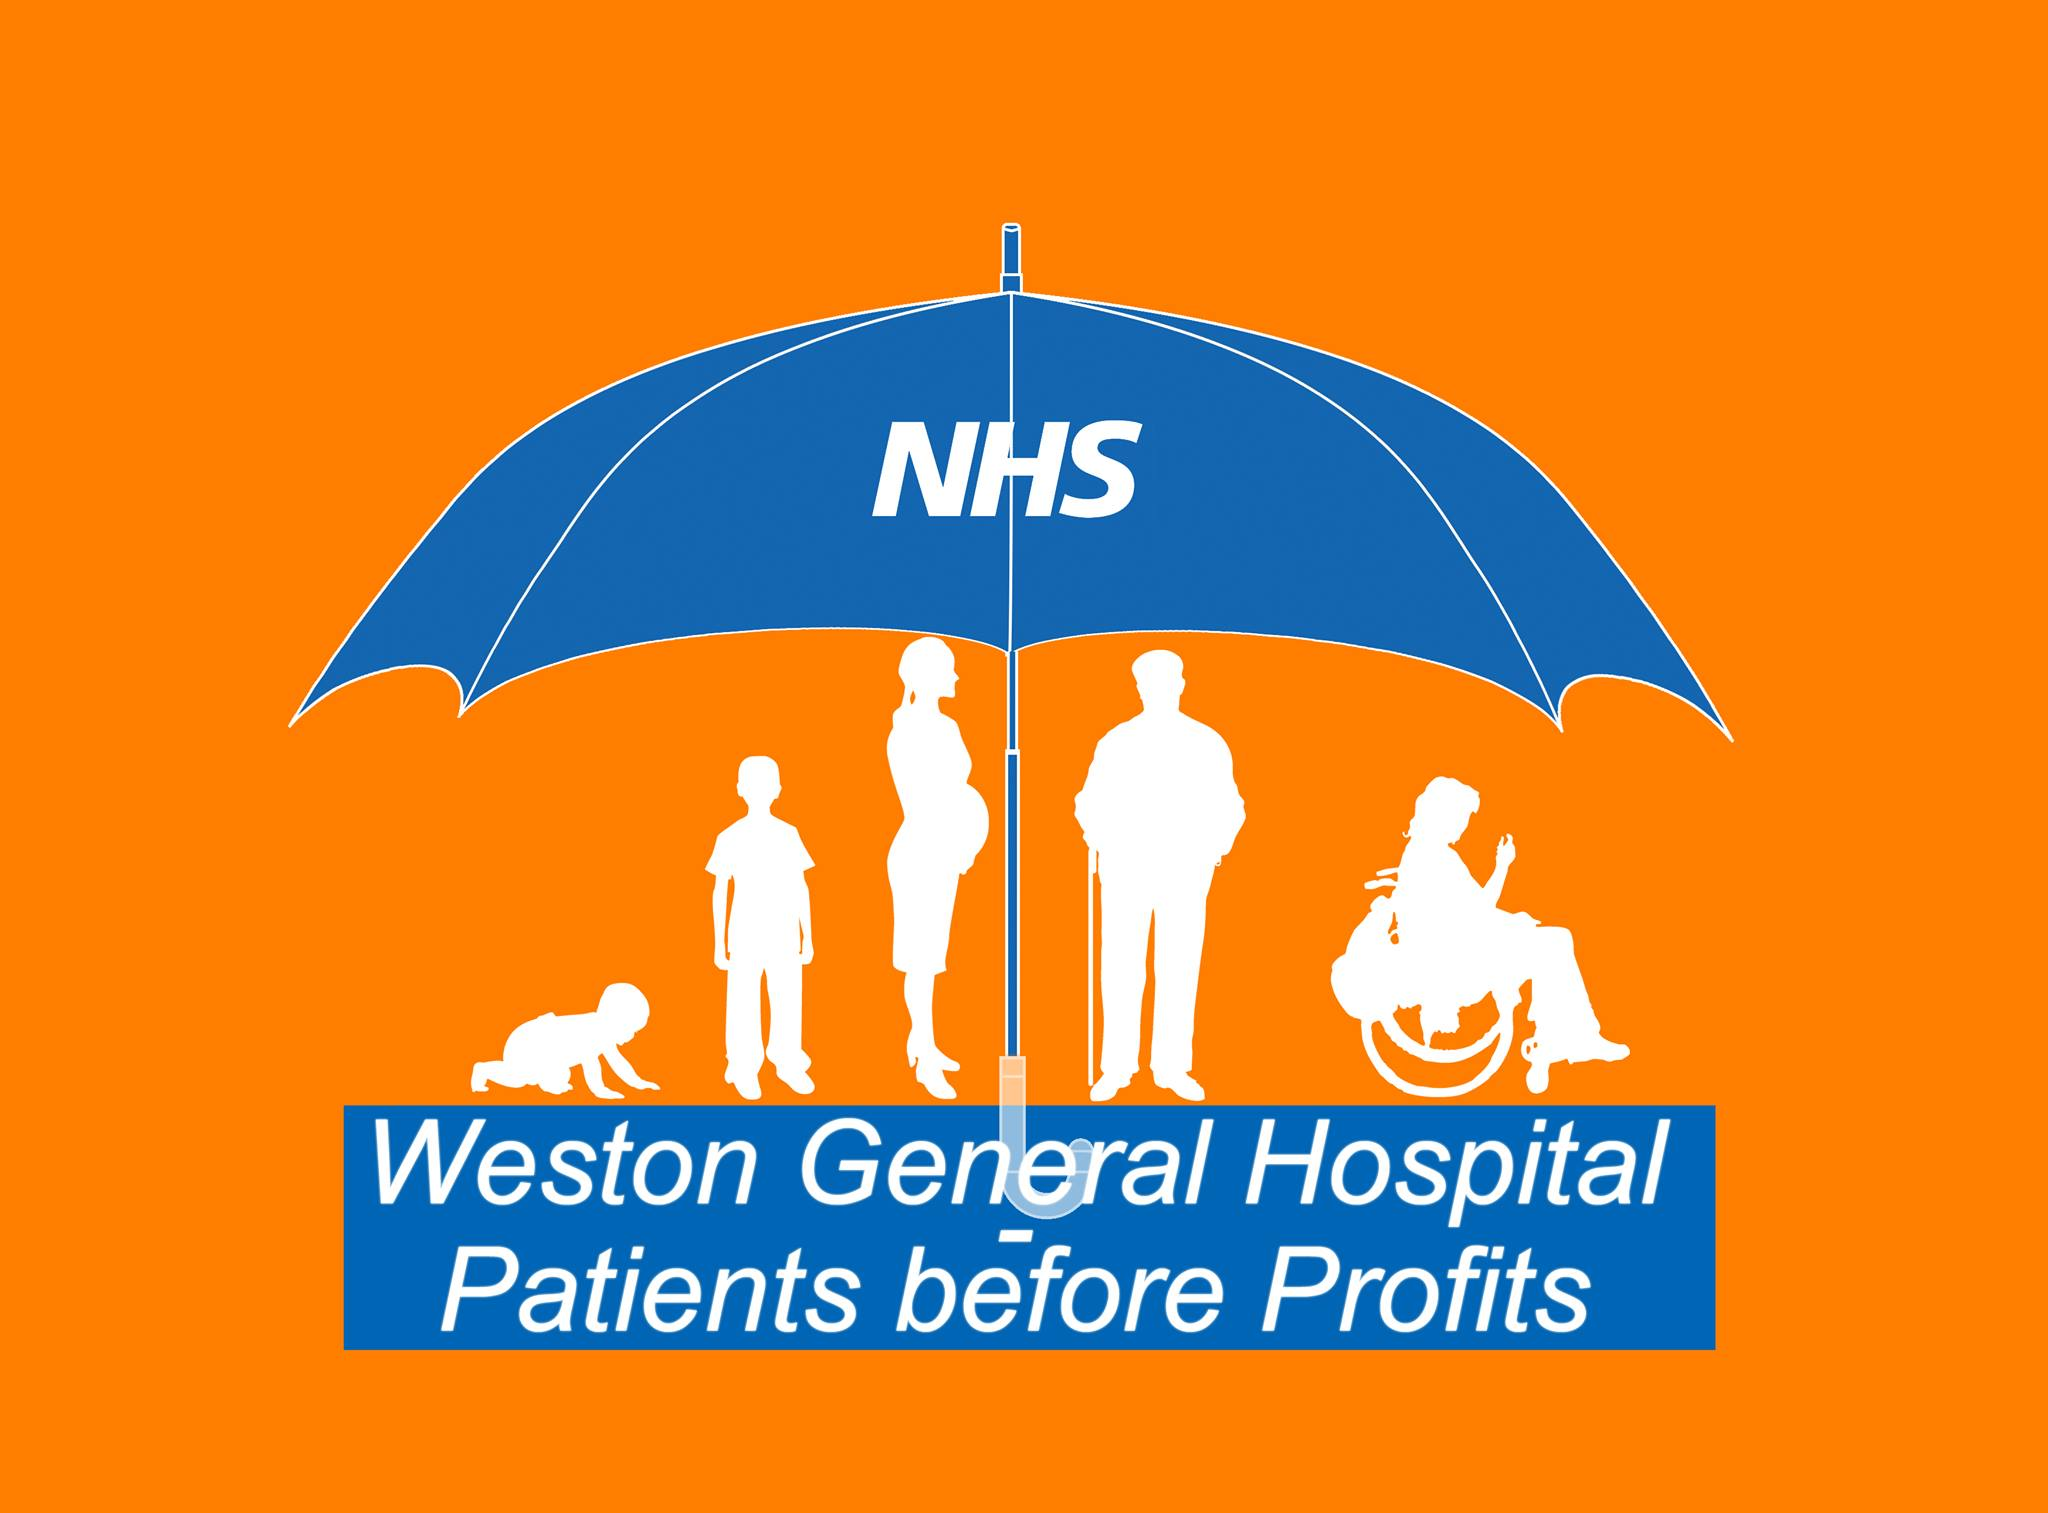 Protect_our_NHS_weston.jpg